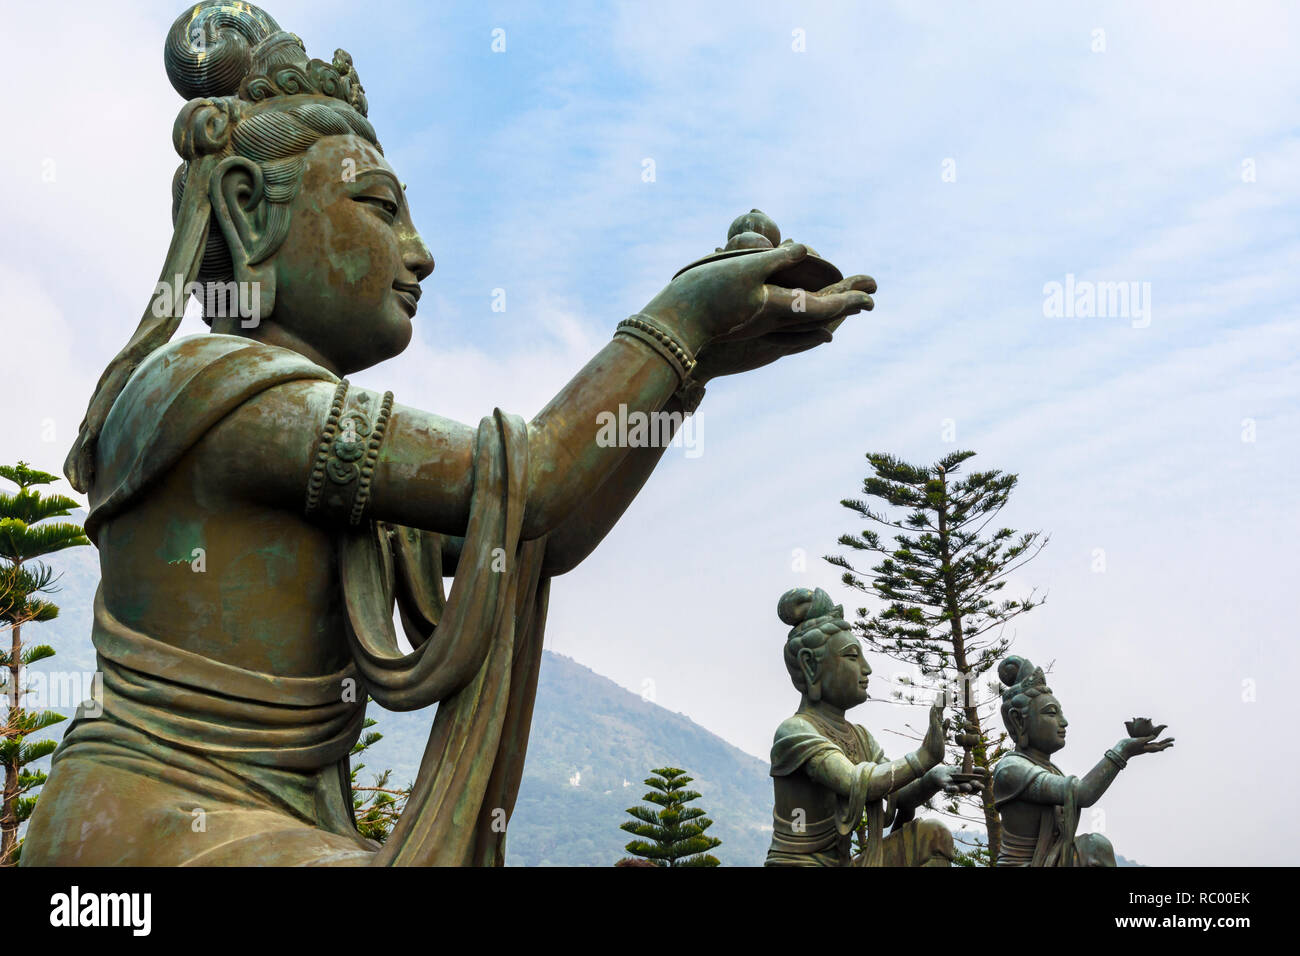 Statues of Buddhist saints making offerings to Buddha at the Tian Tan Buddha, Lantau Island, Hong Kong - Stock Image